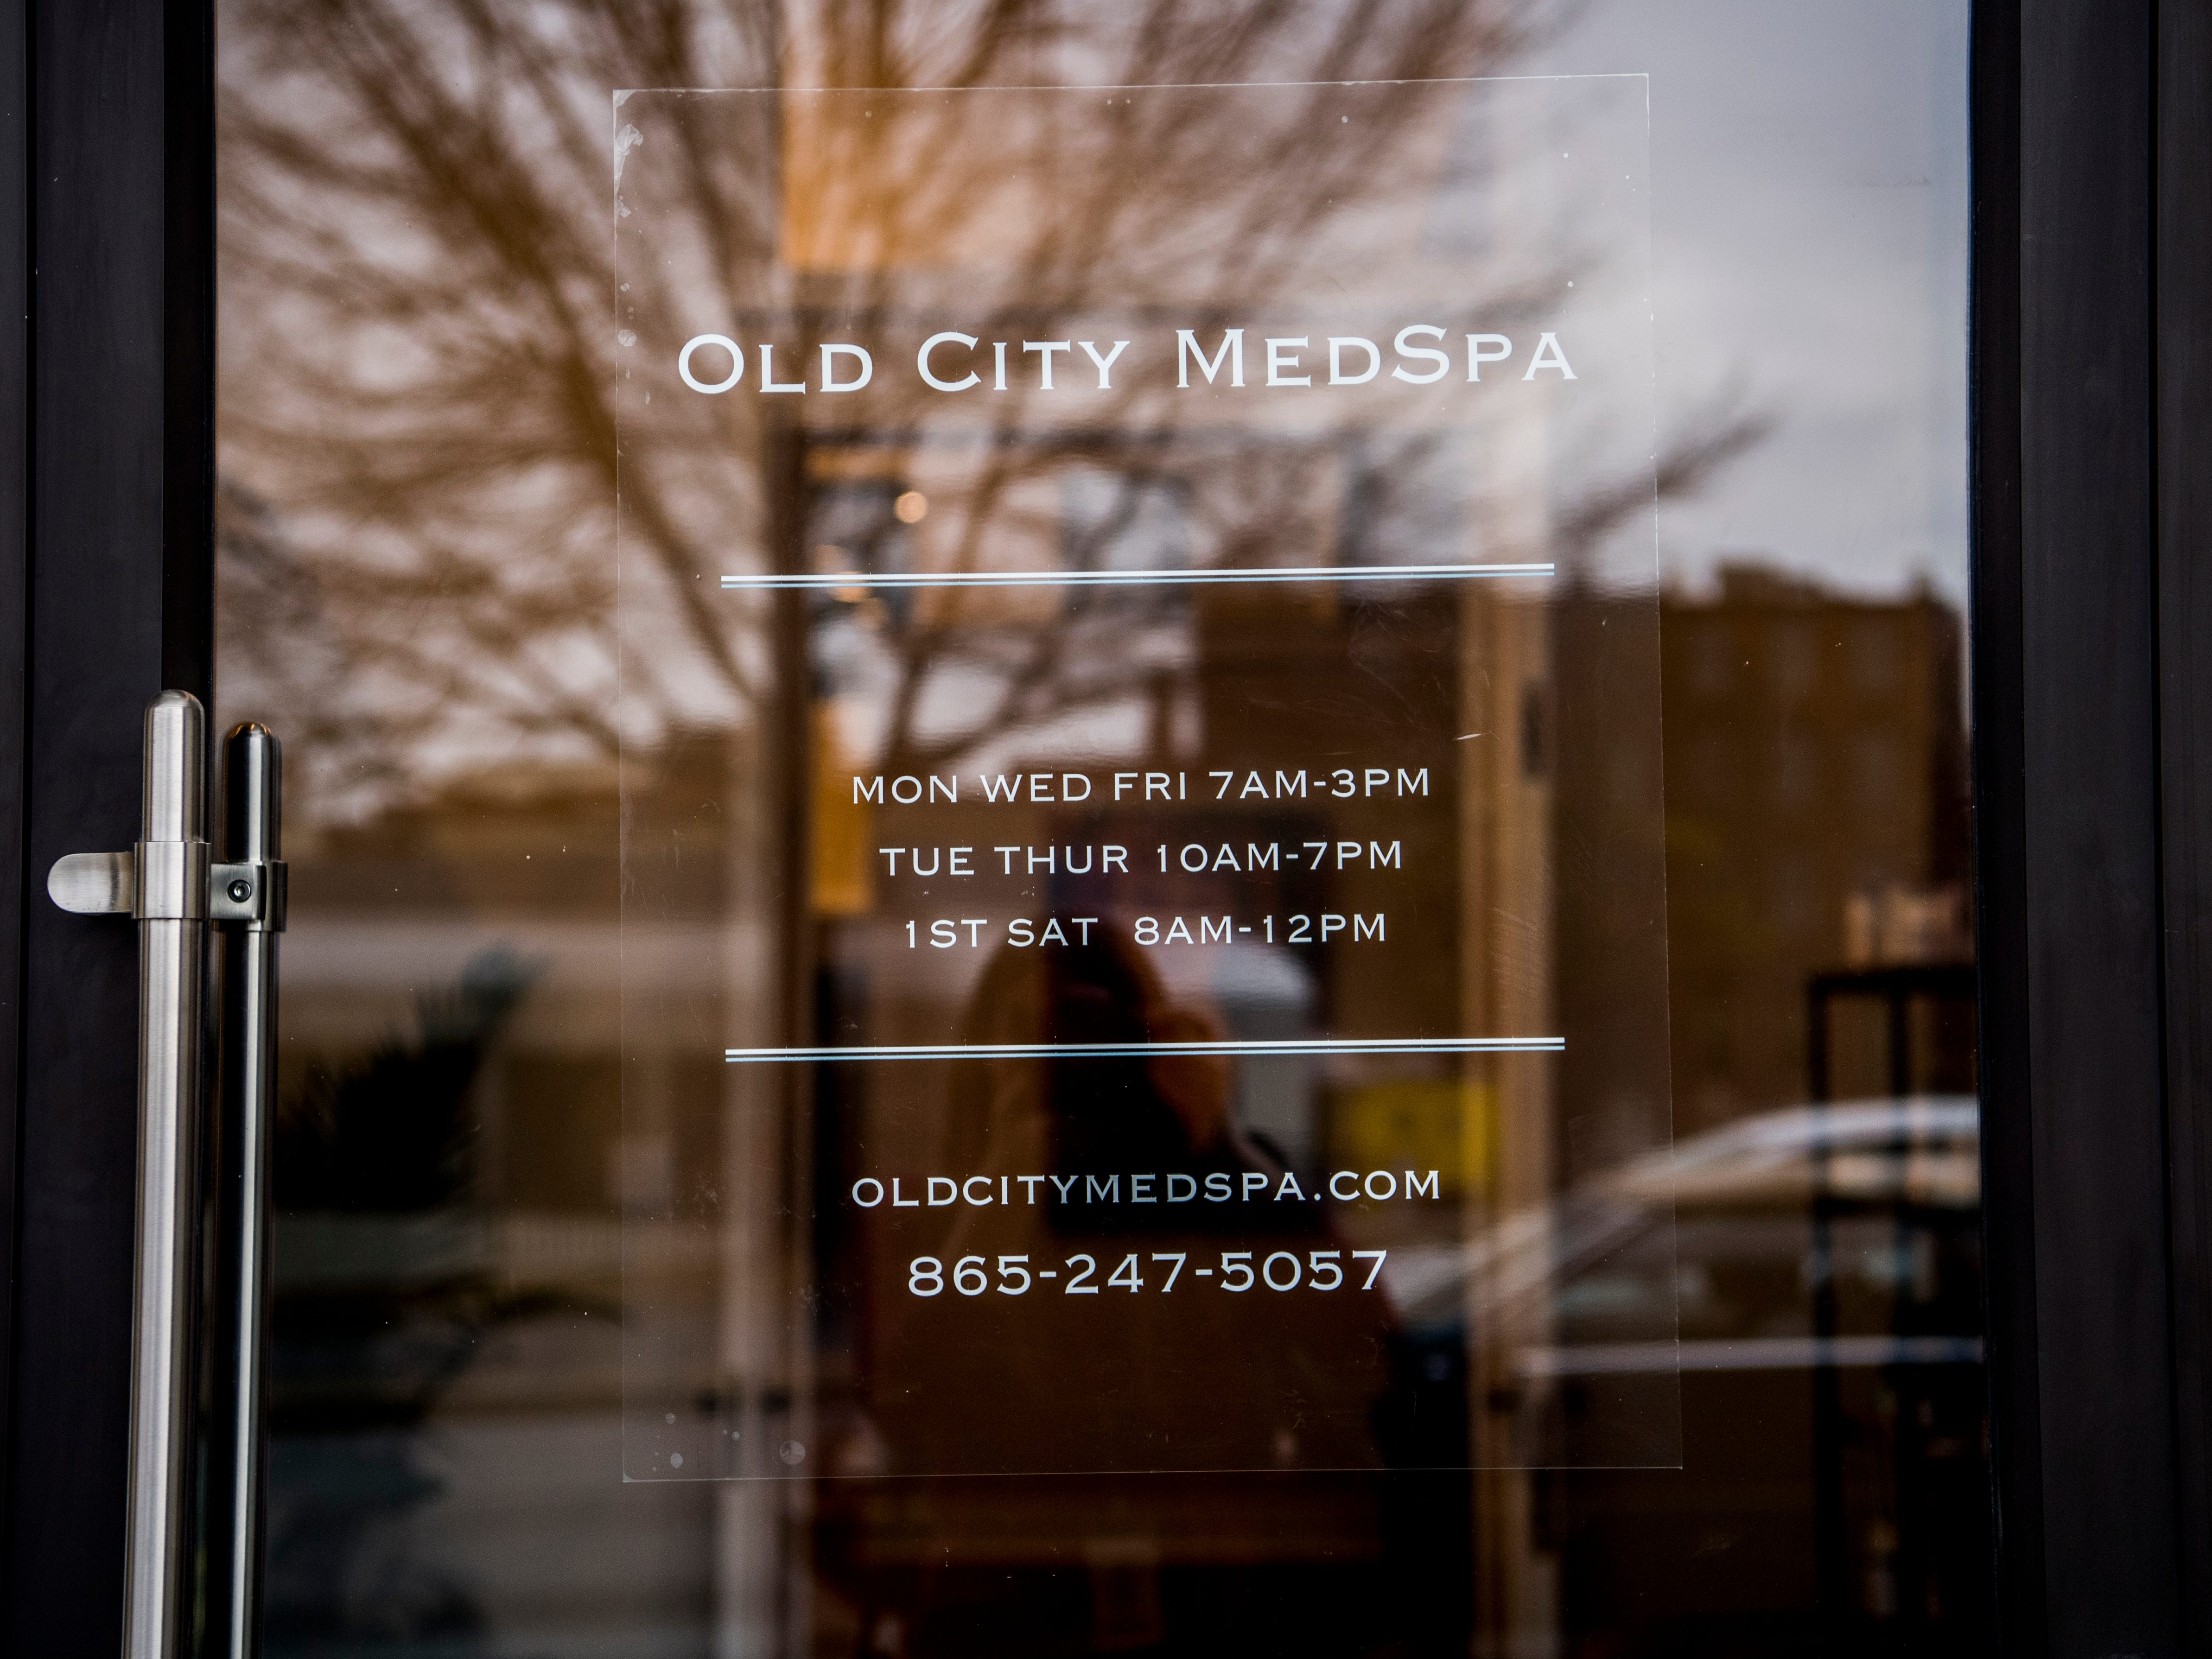 The Old City MedSpa in downtown Knoxville on Monday, February 4, 2019.